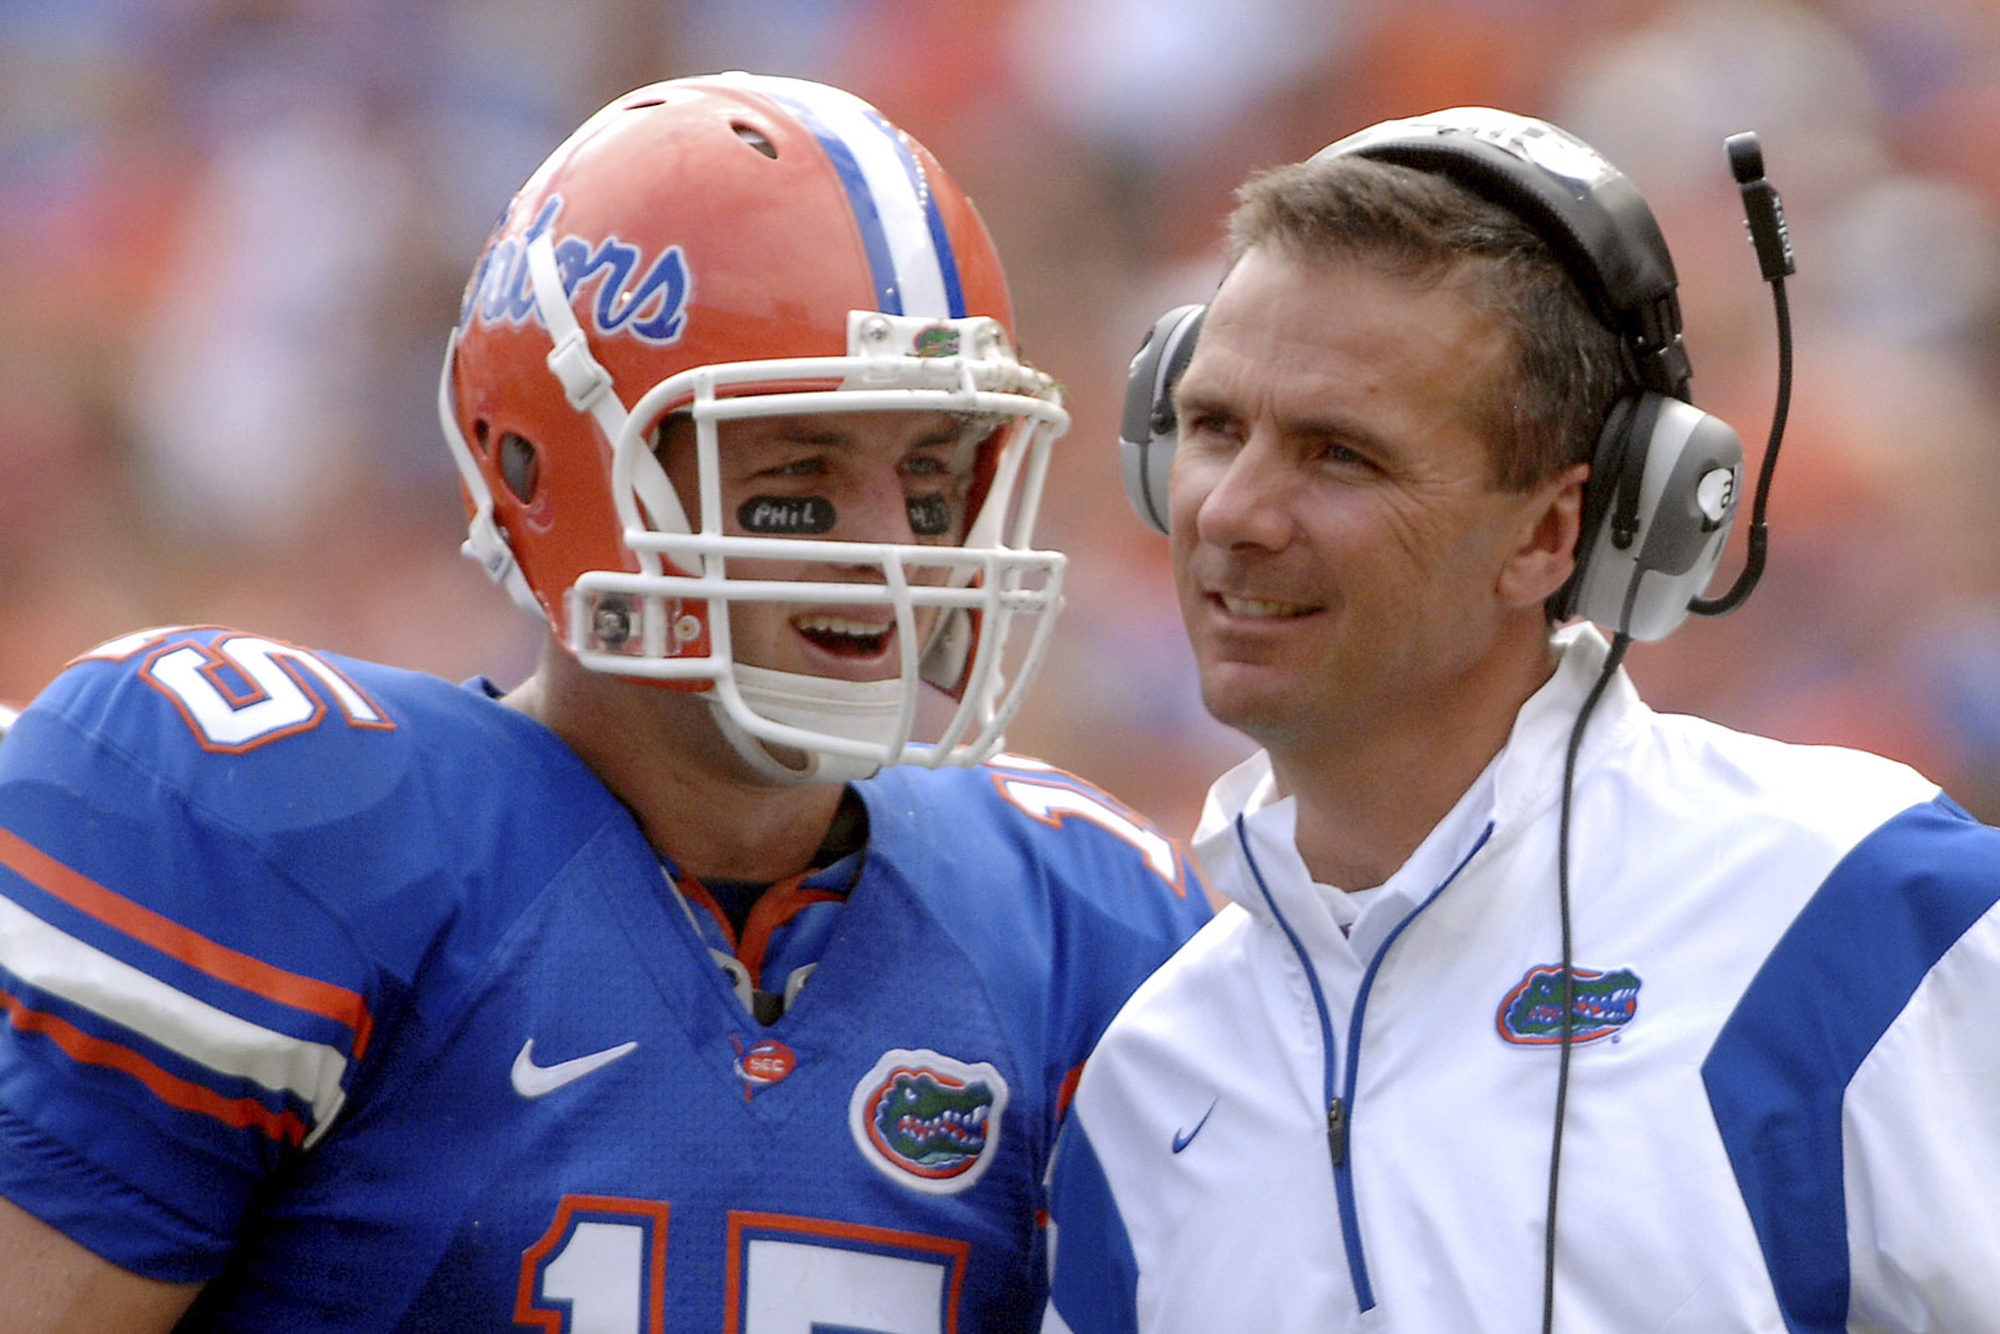 In this Oct. 25, 2008, file photo, Florida quarterback Tim Tebow (15) shares a laugh with coach Urban Meyer during the fourth quarter of an NCAA college football game against Kentucky in Gainesville, Fla. Tebow and Meyer are together again, this time in the NFL and with Tebow playing a new position. The former Florida star and 2007 Heisman Trophy-winning quarterback signed a one-year contract with the Jacksonville Jaguars on Thursday, May 20, 2021, and will attempt to revive his pro career as a tight end. (AP Photo/Phil Sandlin, File)